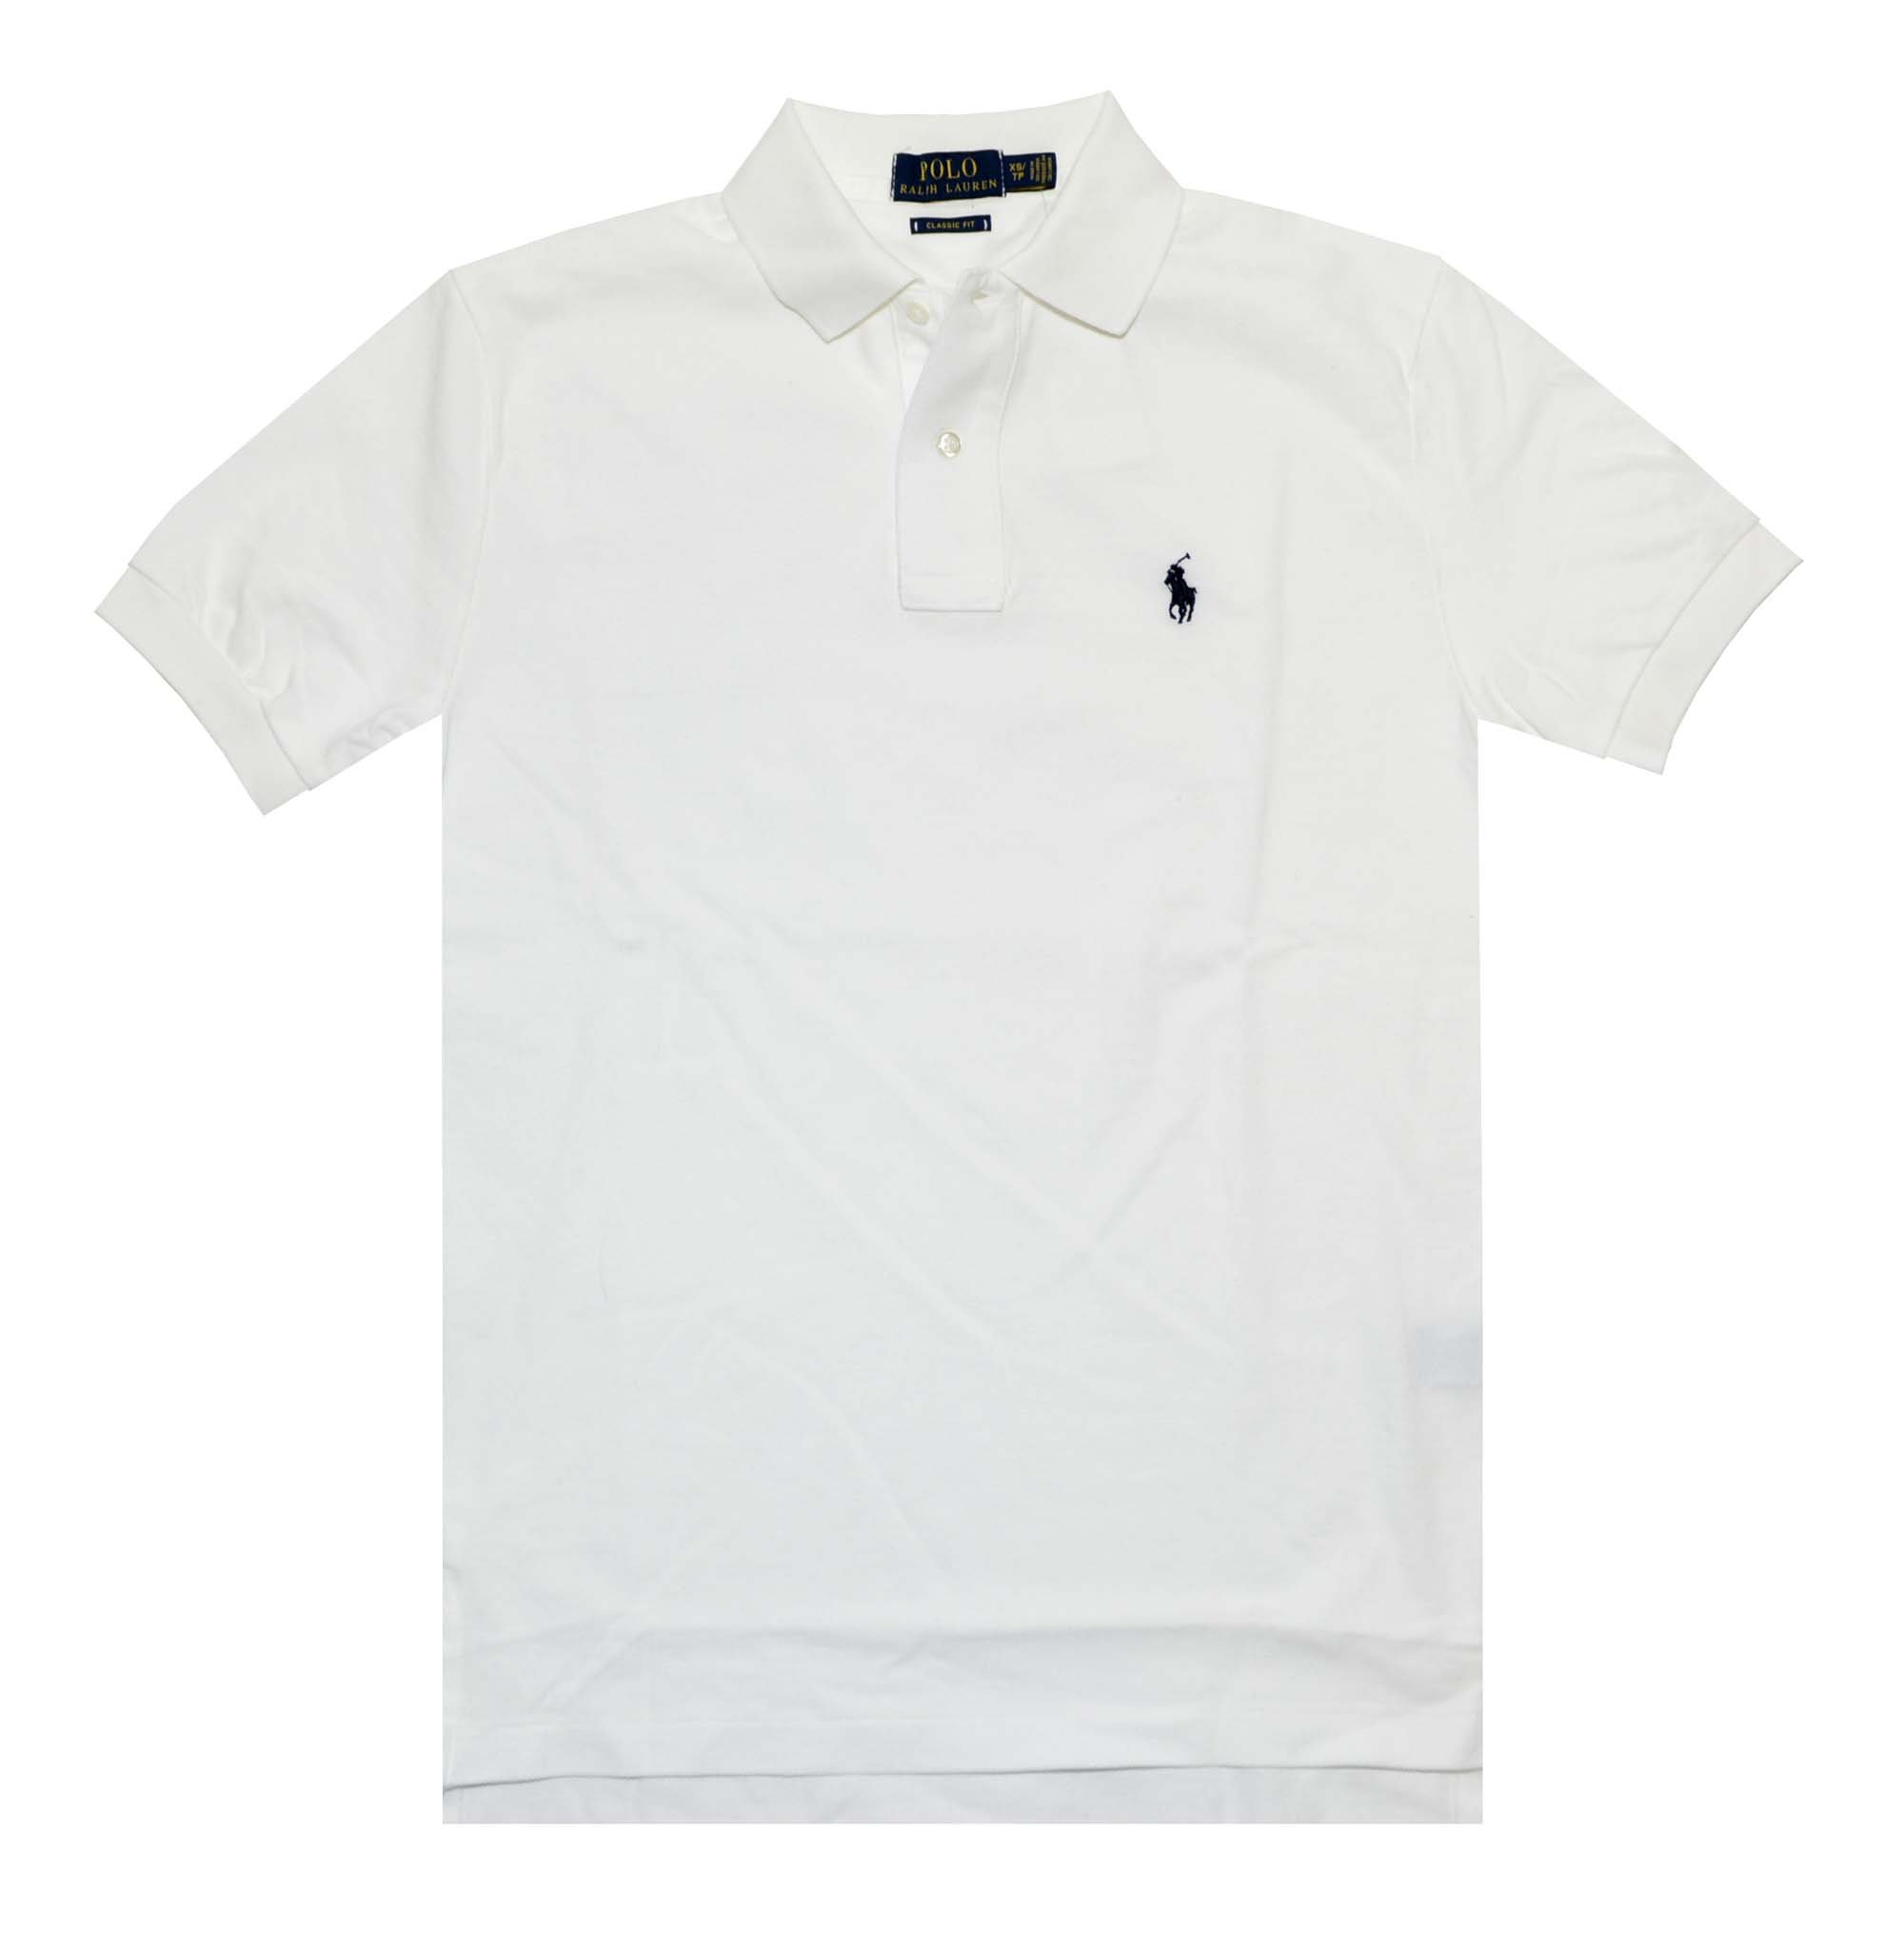 fca0448ed Galleon - Polo Ralph Lauren Men Classic Fit Mesh Polo Shirt (Small, White  7105)